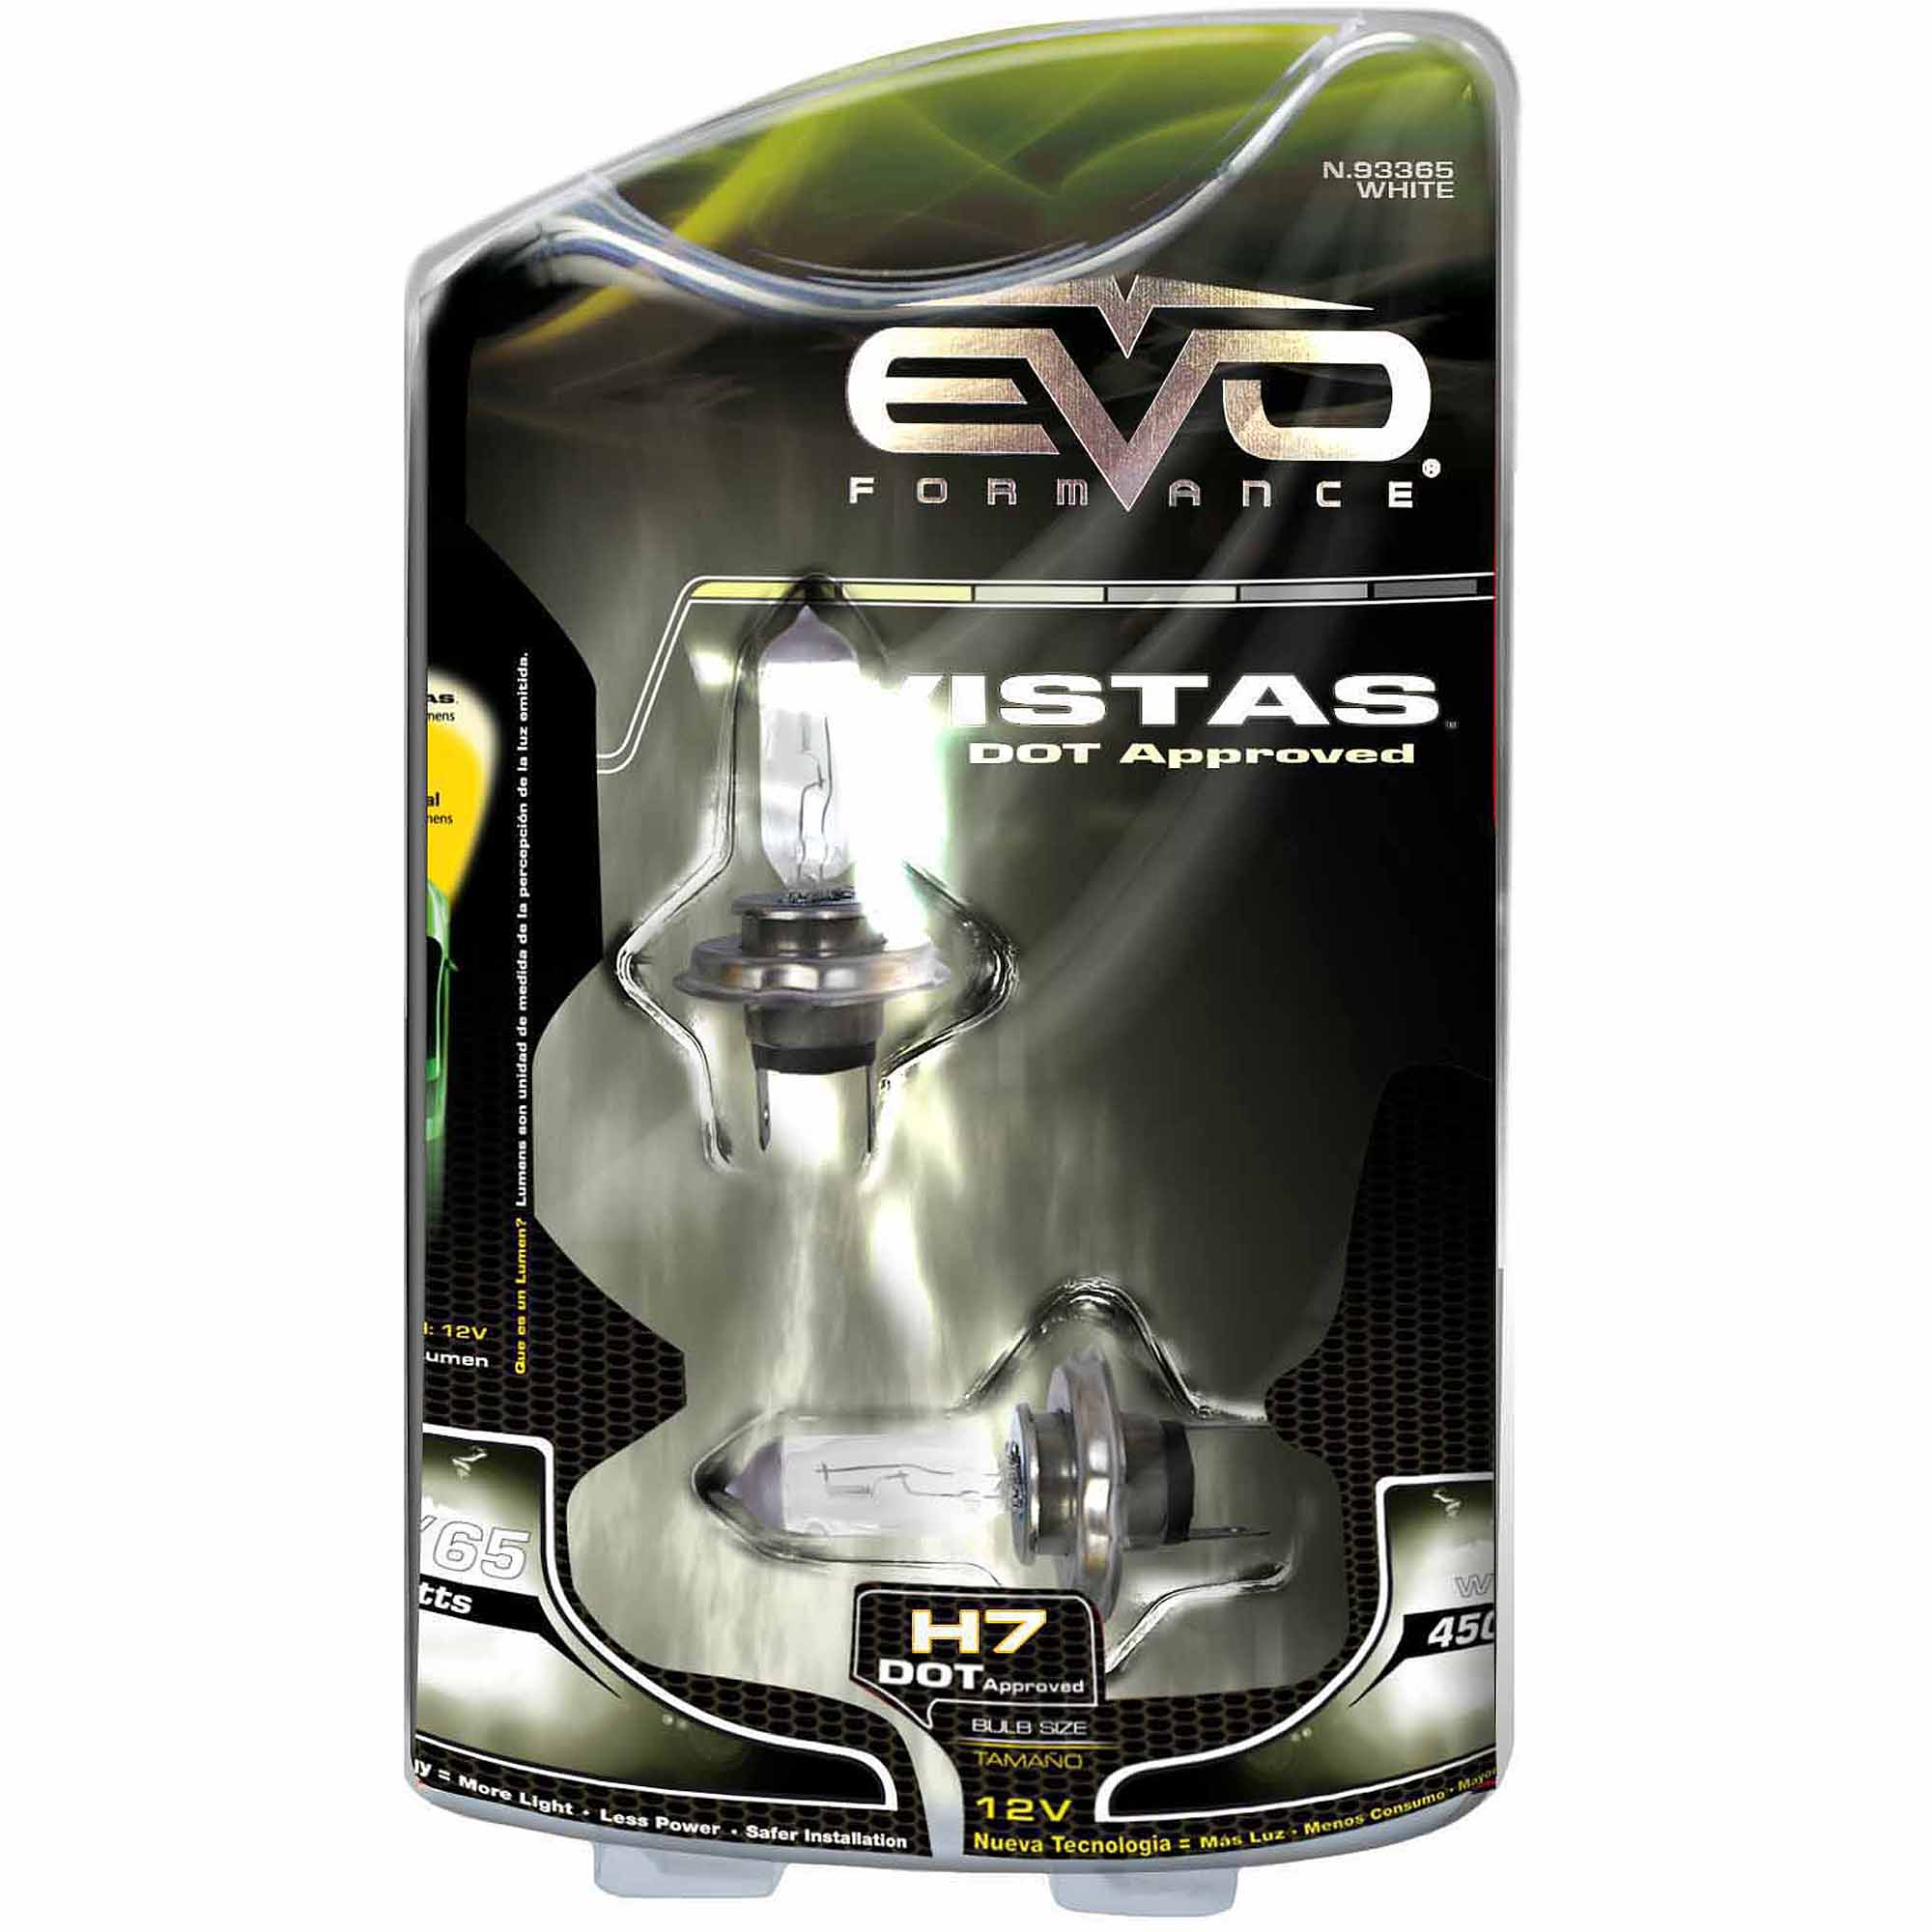 CIPA Vistas DOT Approved H7 Halogen Headlight Bulbs